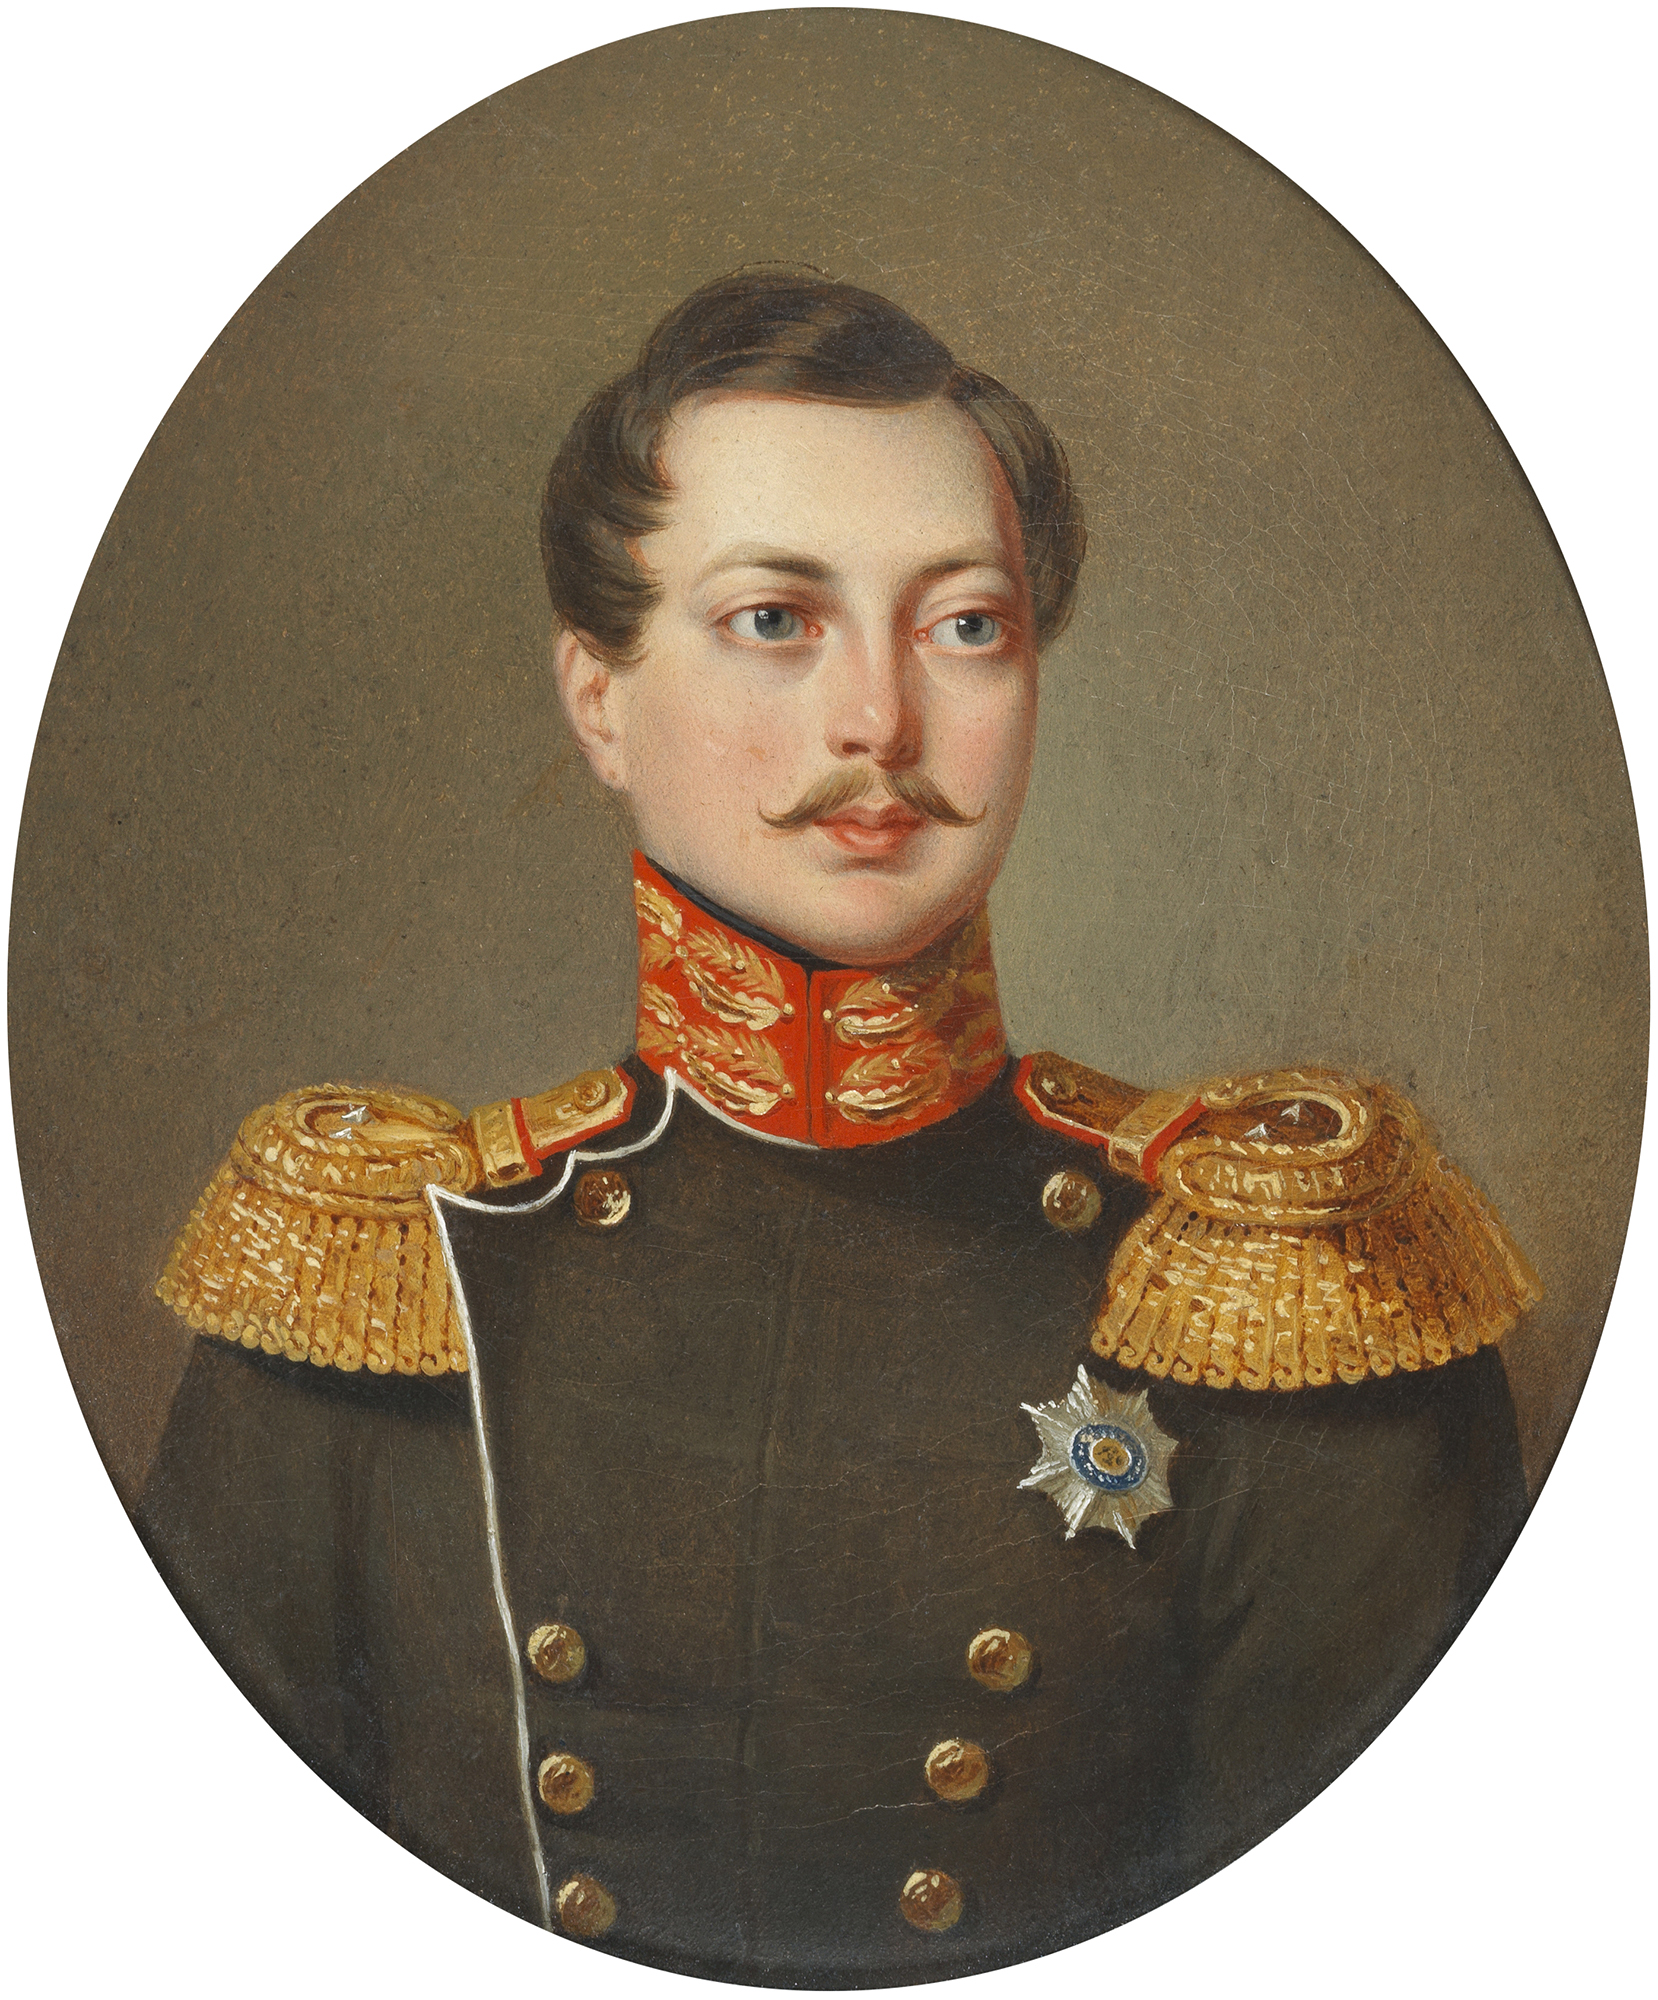 Portrait of Alexander Nikolaevich (1818-1881), Tsesarevich and Grand Duke, heir apparent of Imperial Russia (1825-1855), Emperor of Russia, Grand Duke of Finland (Alexander II) from 1855 to 1881 | Portraits of Kings